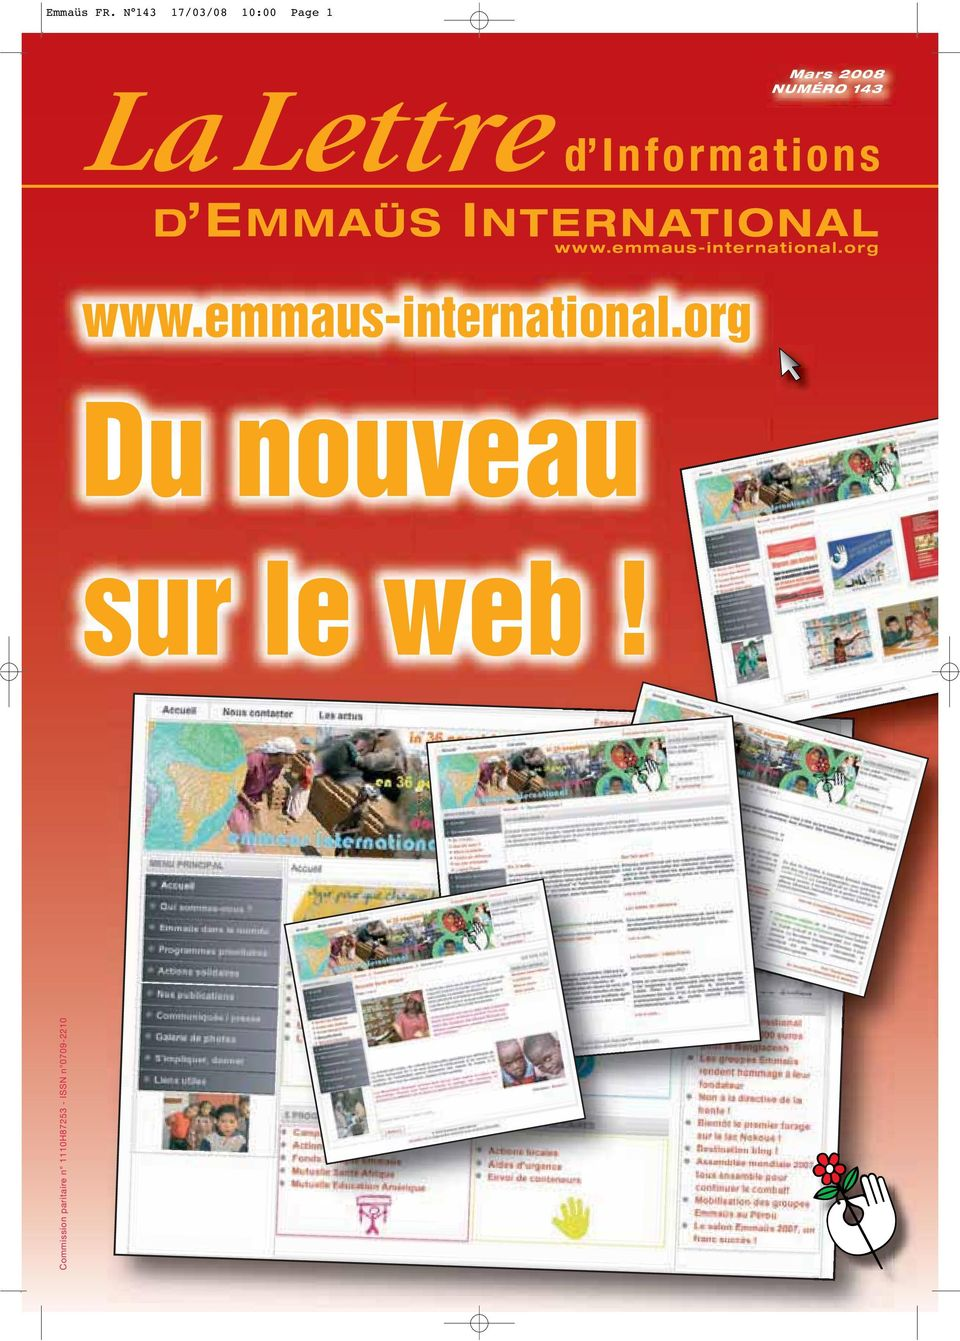 w w w.emmaus-international.org www.emmaus-international.org Du nouveau sur le web!